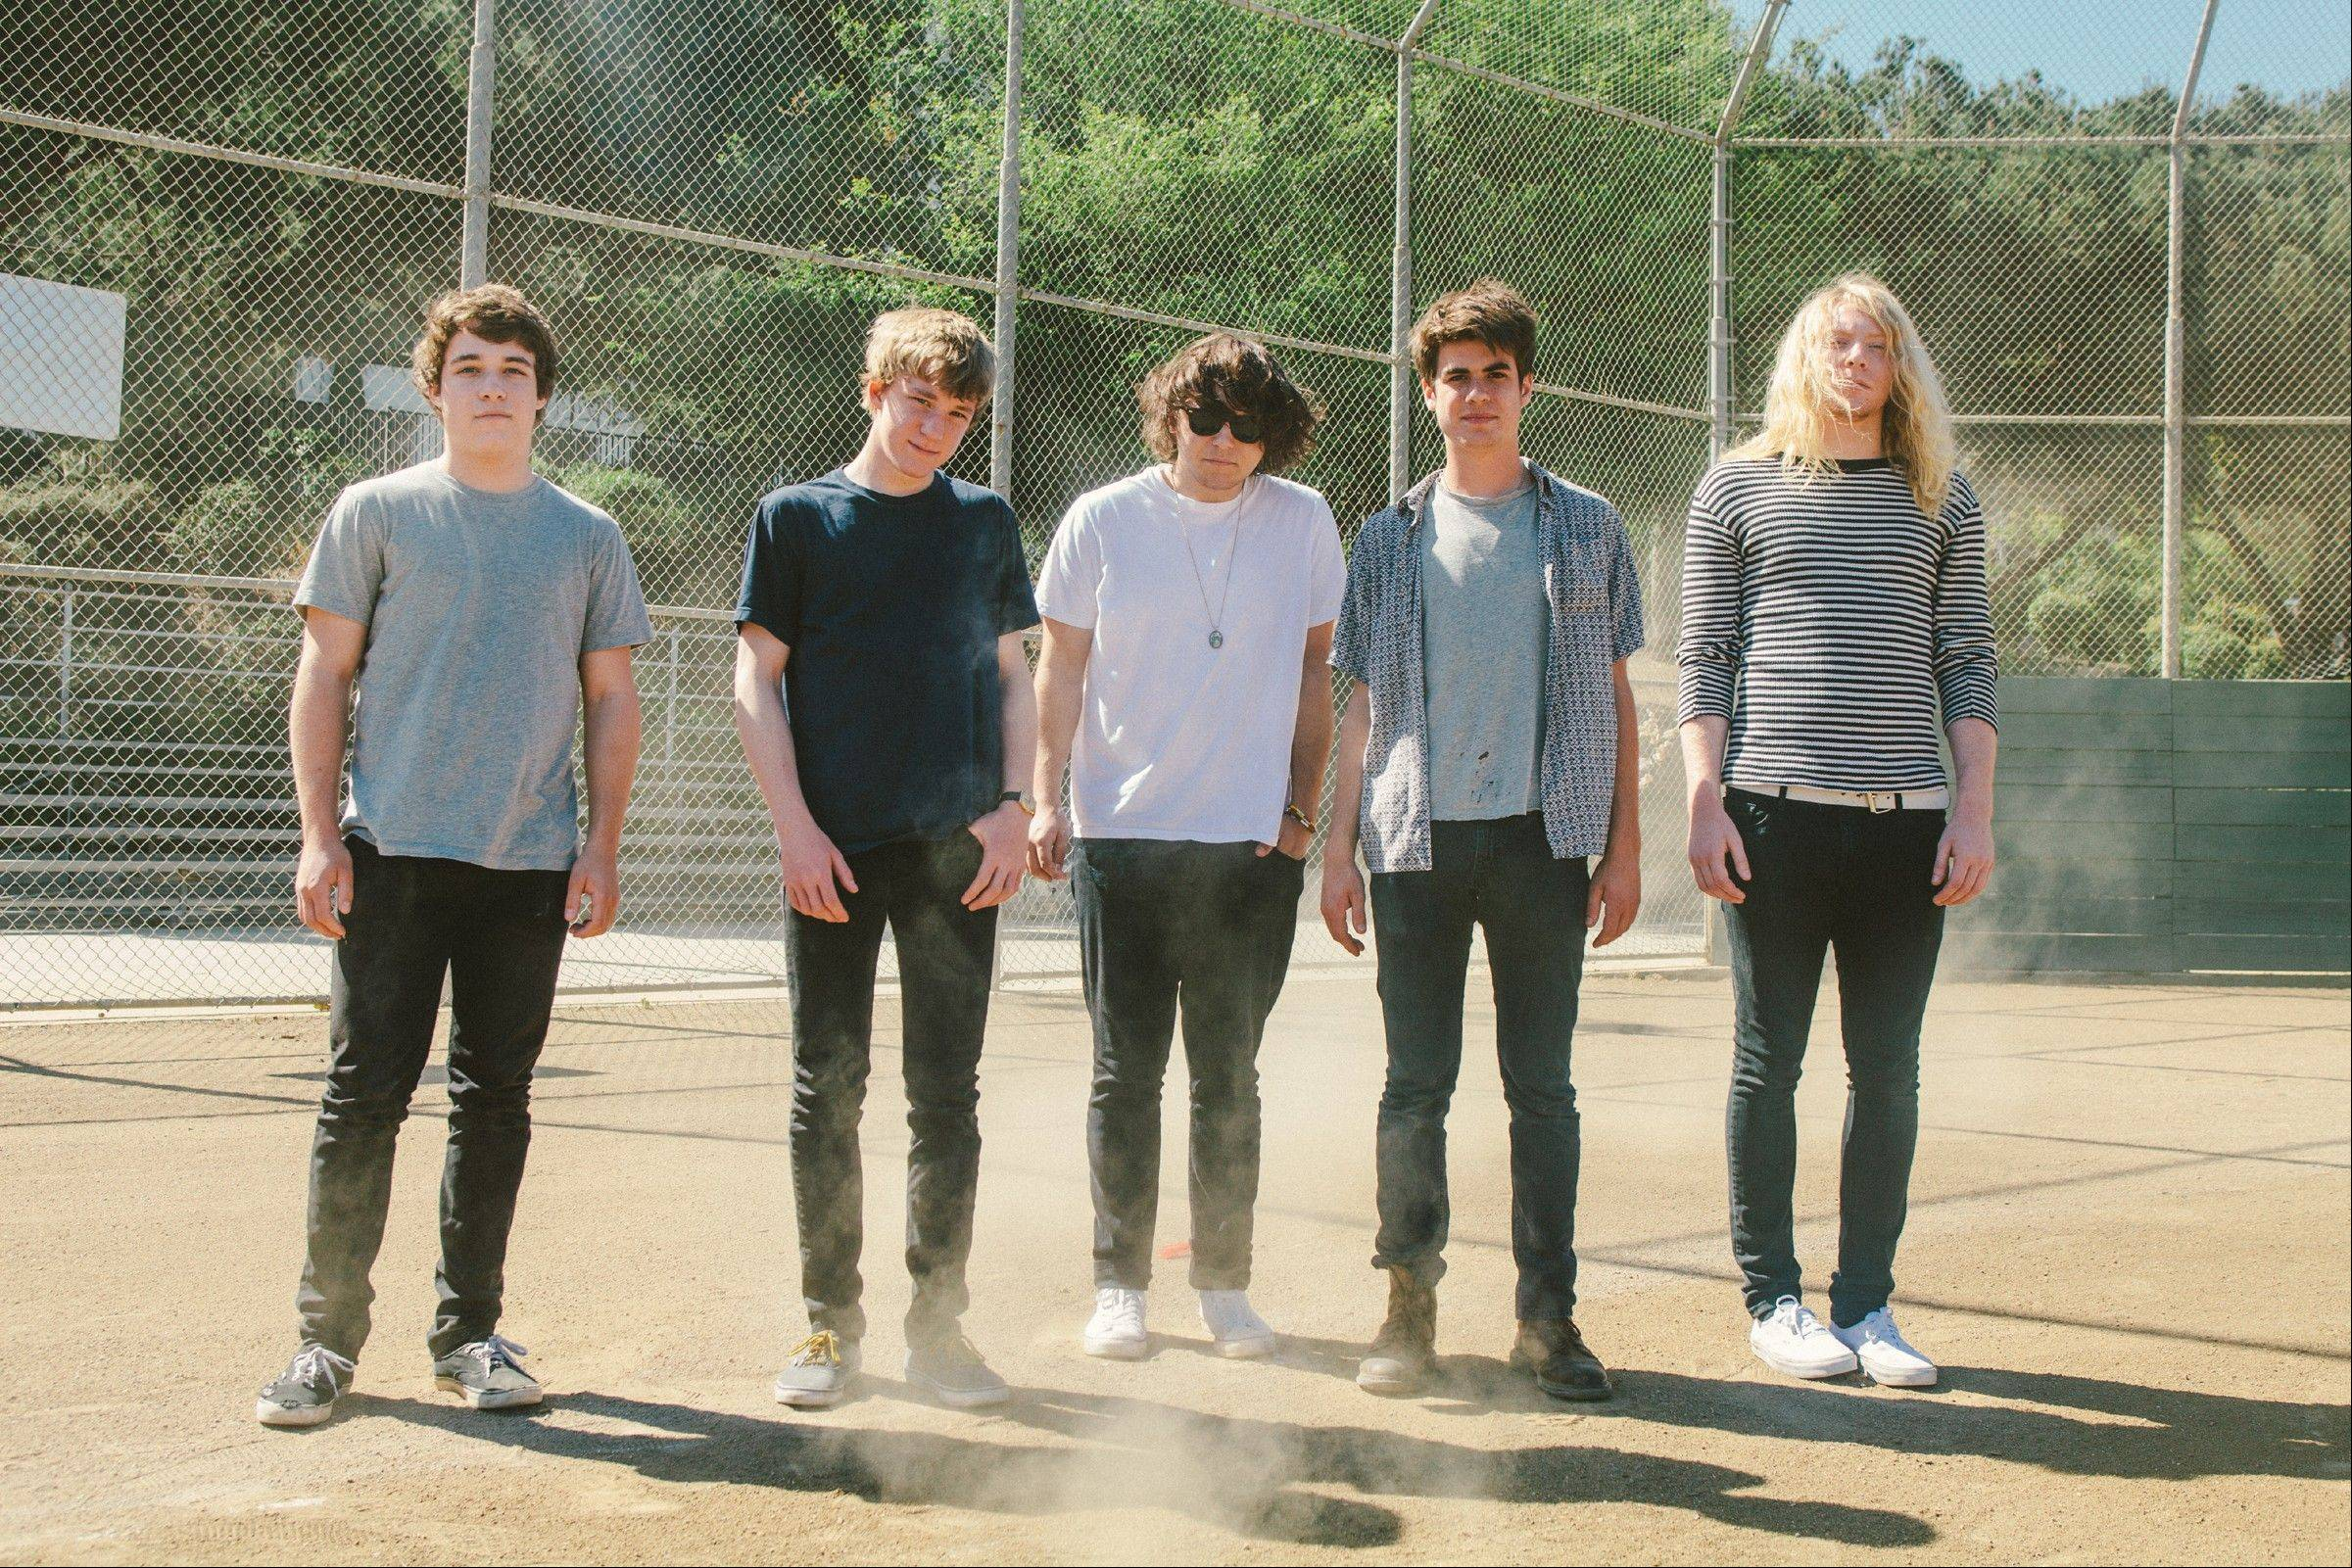 The Orwells: From suburban garage band to Lollapalooza